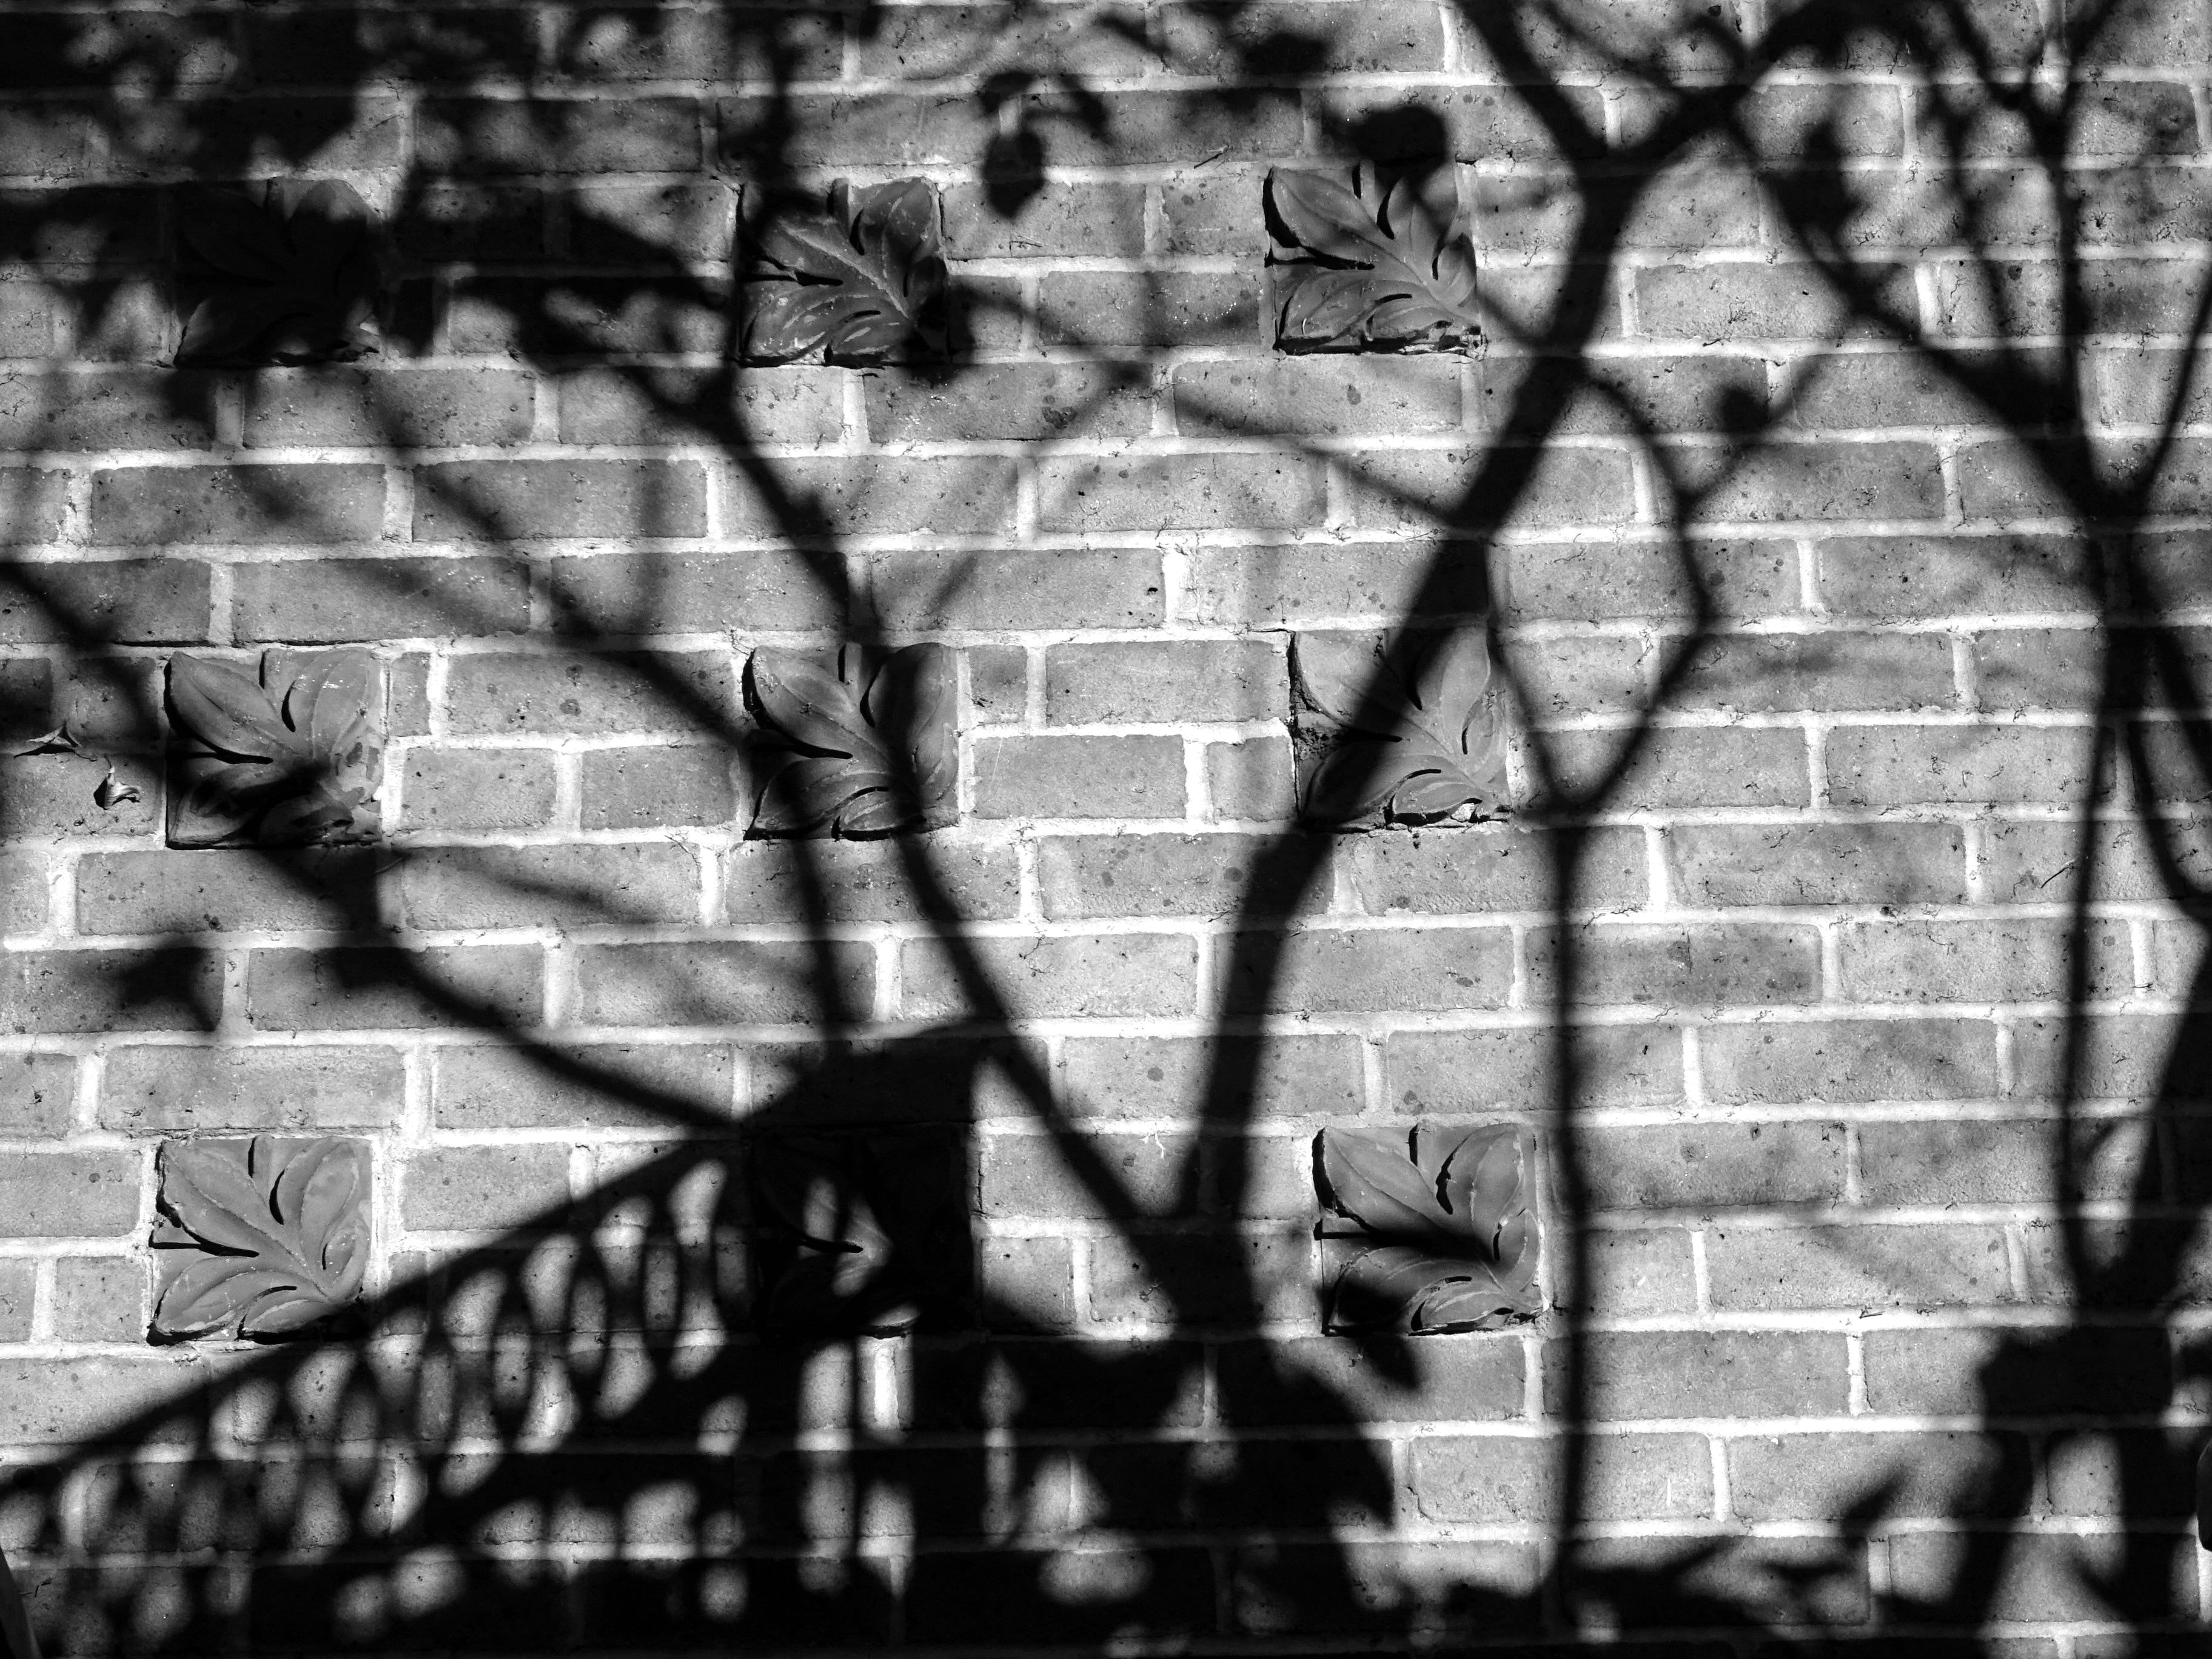 Black and White Photo of Shadows on the Wall, Abstract, Architecture, Black-and-white, Bricks, HQ Photo